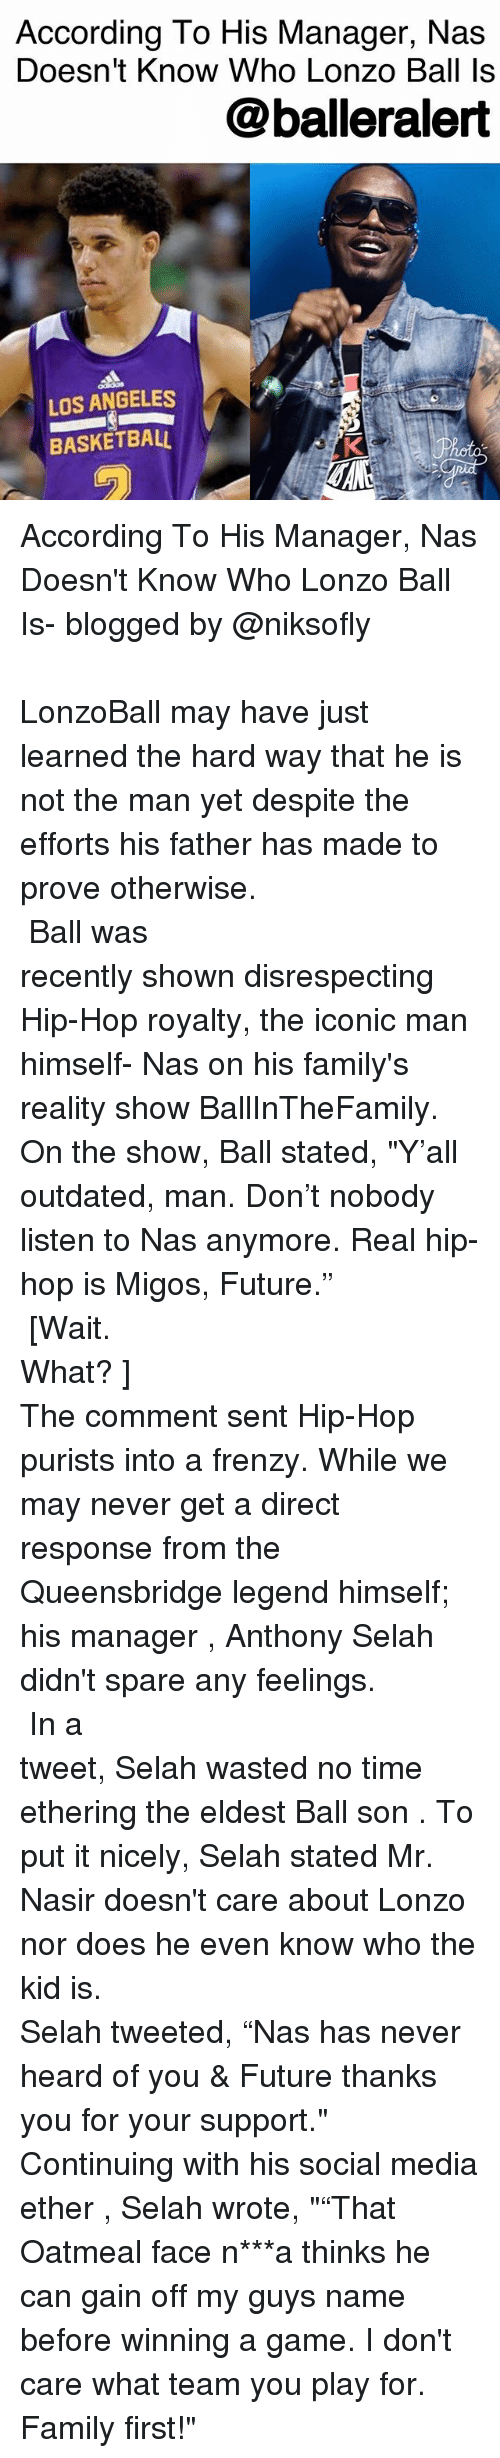 """Basketball, Ether, and Family: According To His Manager, Nas  Doesn't Know Who Lonzo Ball Is  @balleralert  LOS ANGELES  BASKETBALL According To His Manager, Nas Doesn't Know Who Lonzo Ball Is- blogged by @niksofly ⠀⠀⠀⠀⠀⠀⠀⠀⠀⠀⠀⠀⠀⠀⠀⠀⠀⠀⠀⠀⠀⠀⠀⠀⠀⠀⠀⠀⠀⠀⠀⠀⠀⠀⠀⠀ LonzoBall may have just learned the hard way that he is not the man yet despite the efforts his father has made to prove otherwise. ⠀⠀⠀⠀⠀⠀⠀⠀⠀⠀⠀⠀⠀⠀⠀⠀⠀⠀⠀⠀⠀⠀⠀⠀⠀⠀⠀⠀⠀⠀⠀⠀⠀⠀⠀⠀ Ball was recently shown disrespecting Hip-Hop royalty, the iconic man himself- Nas on his family's reality show BallInTheFamily. On the show, Ball stated, """"Y'all outdated, man. Don't nobody listen to Nas anymore. Real hip-hop is Migos, Future."""" ⠀⠀⠀⠀⠀⠀⠀⠀⠀⠀⠀⠀⠀⠀⠀⠀⠀⠀⠀⠀⠀⠀⠀⠀⠀⠀⠀⠀⠀⠀⠀⠀⠀⠀⠀⠀ [Wait. What? ] ⠀⠀⠀⠀⠀⠀⠀⠀⠀⠀⠀⠀⠀⠀⠀⠀⠀⠀⠀⠀⠀⠀⠀⠀⠀⠀⠀⠀⠀⠀⠀⠀⠀⠀⠀⠀ The comment sent Hip-Hop purists into a frenzy. While we may never get a direct response from the Queensbridge legend himself; his manager , Anthony Selah didn't spare any feelings. ⠀⠀⠀⠀⠀⠀⠀⠀⠀⠀⠀⠀⠀⠀⠀⠀⠀⠀⠀⠀⠀⠀⠀⠀⠀⠀⠀⠀⠀⠀⠀⠀⠀⠀⠀⠀ In a tweet, Selah wasted no time ethering the eldest Ball son . To put it nicely, Selah stated Mr. Nasir doesn't care about Lonzo nor does he even know who the kid is. ⠀⠀⠀⠀⠀⠀⠀⠀⠀⠀⠀⠀⠀⠀⠀⠀⠀⠀⠀⠀⠀⠀⠀⠀⠀⠀⠀⠀⠀⠀⠀⠀⠀⠀⠀⠀ Selah tweeted, """"Nas has never heard of you & Future thanks you for your support."""" Continuing with his social media ether , Selah wrote, """"""""That Oatmeal face n***a thinks he can gain off my guys name before winning a game. I don't care what team you play for. Family first!"""""""